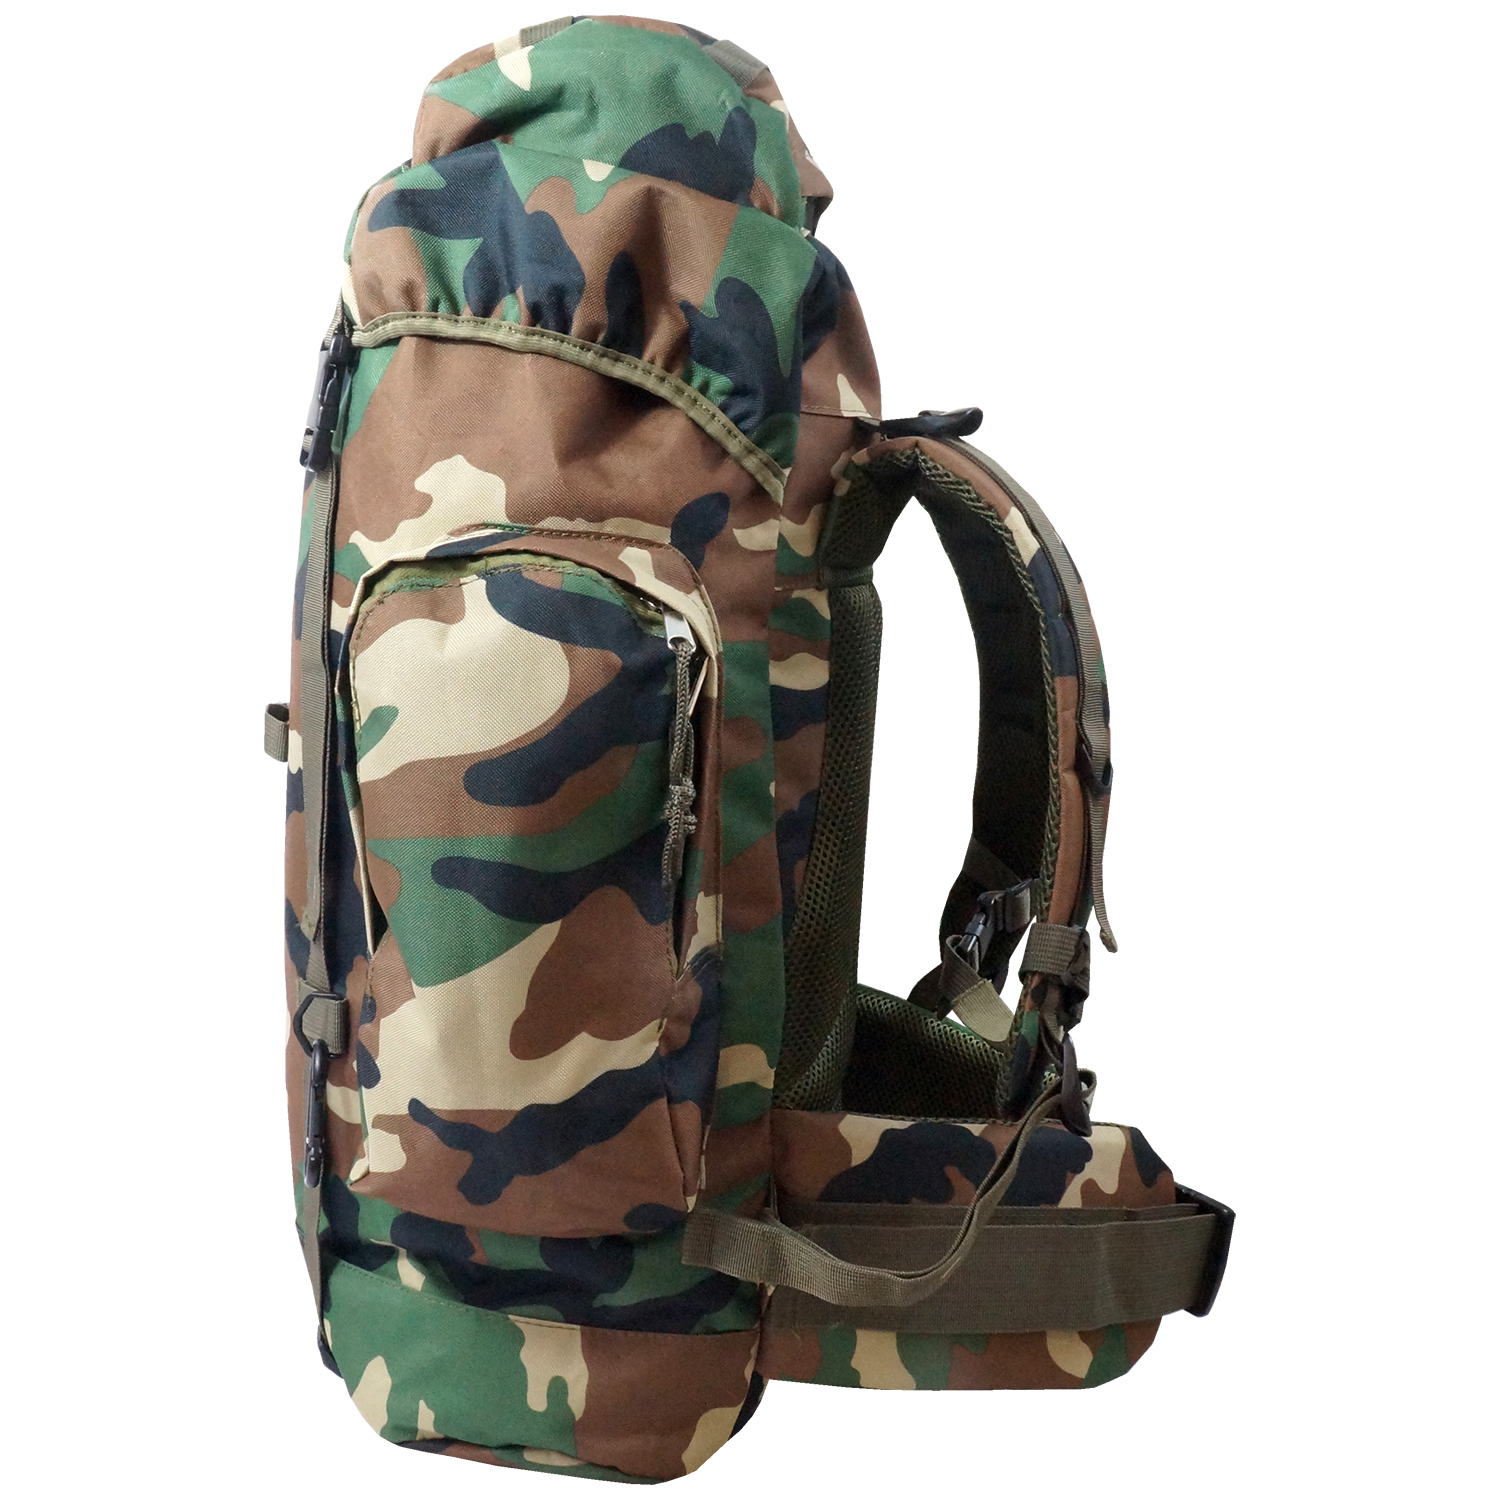 Every-Day-Carry-Heavy-Duty-XL-Mountaineer-Hiking-Day-Pack-Backpack-All-Colors